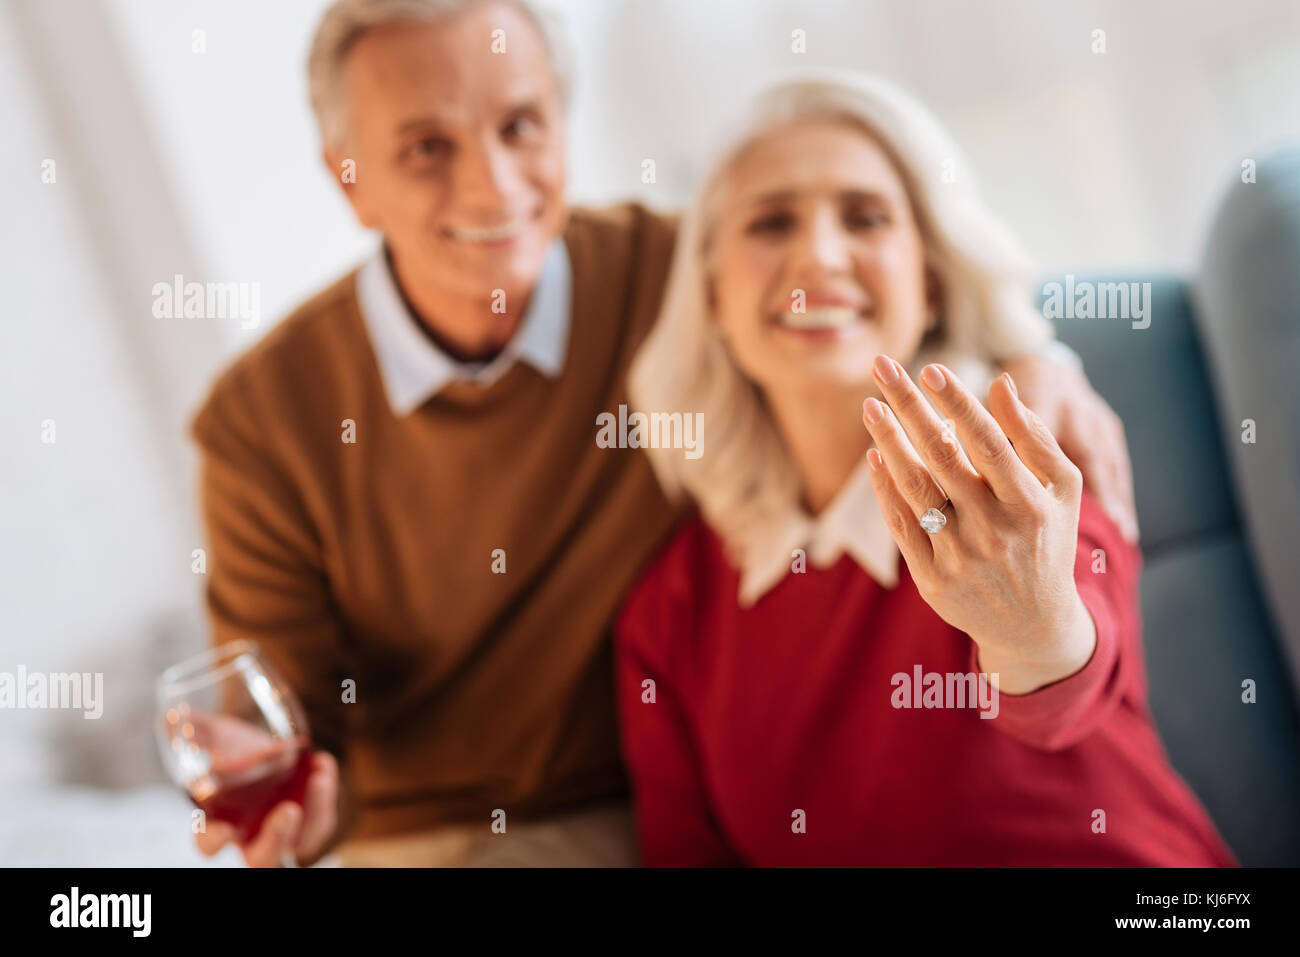 Radiant senior woman and man smiling after their engagement - Stock Image